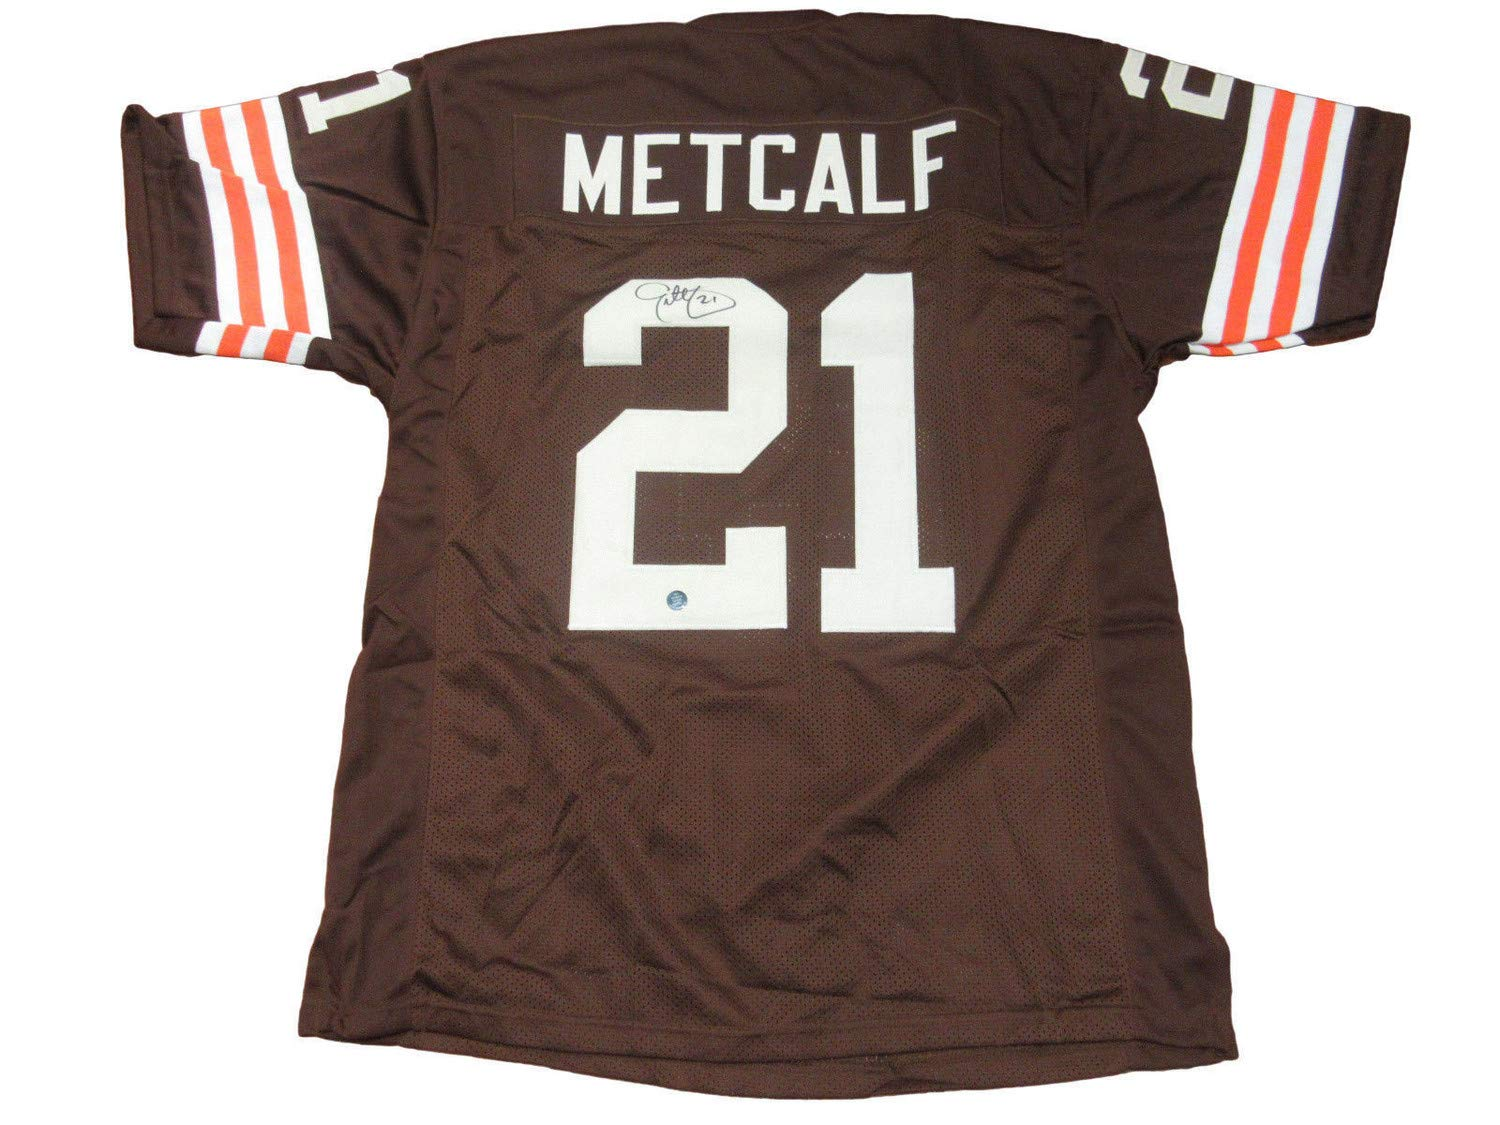 Eric Metcalf Autographed Signed Browns Jersey - JSA Certified